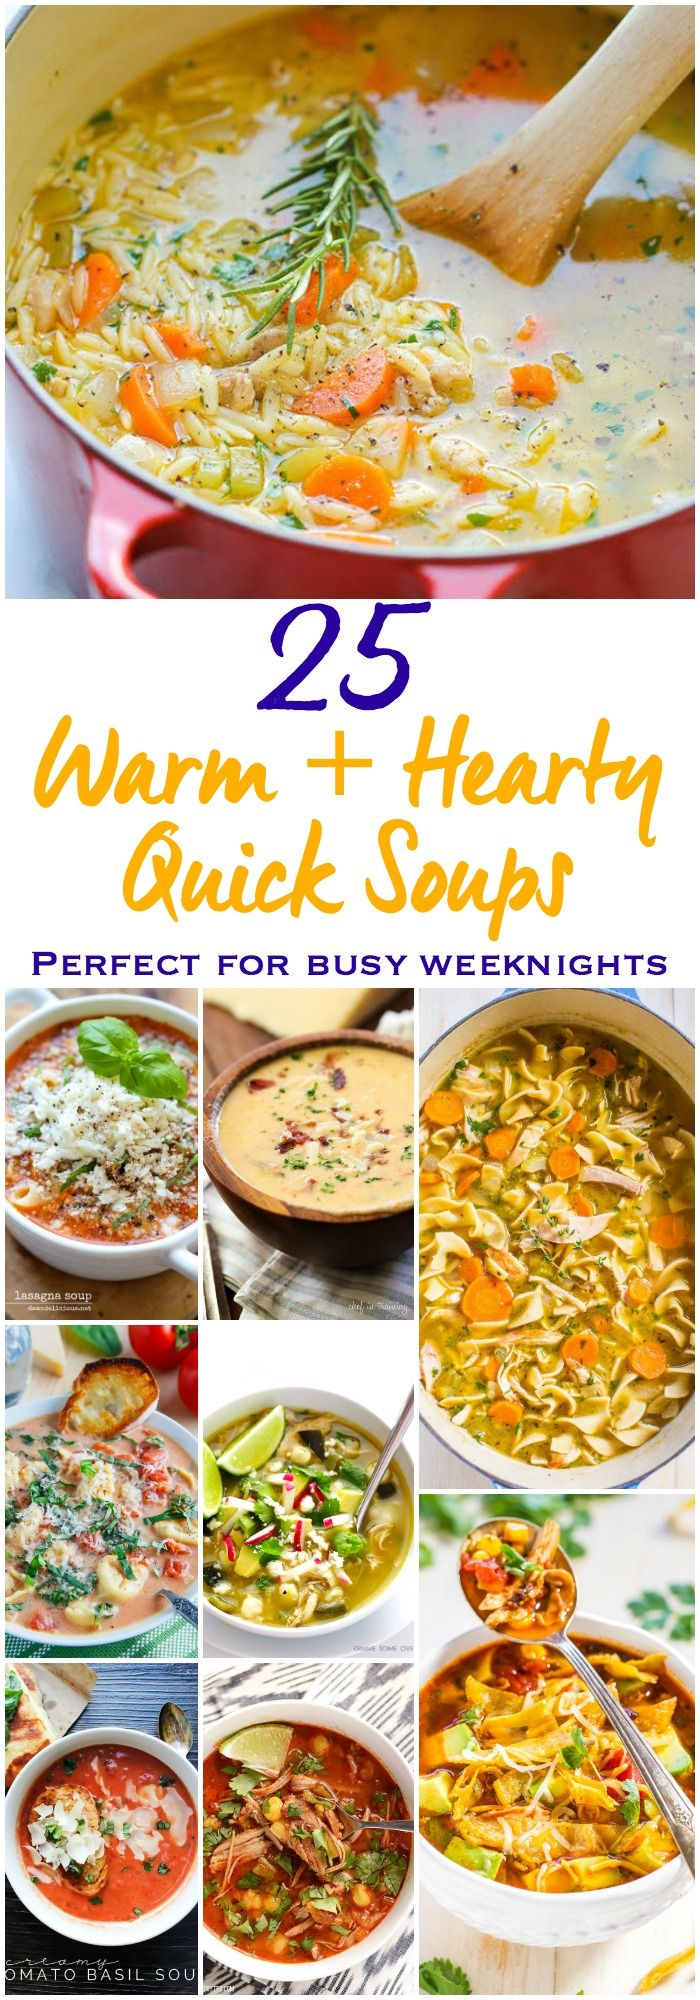 25 Best Ever Quick Soup Recipes Ready in 30 minutes or less!